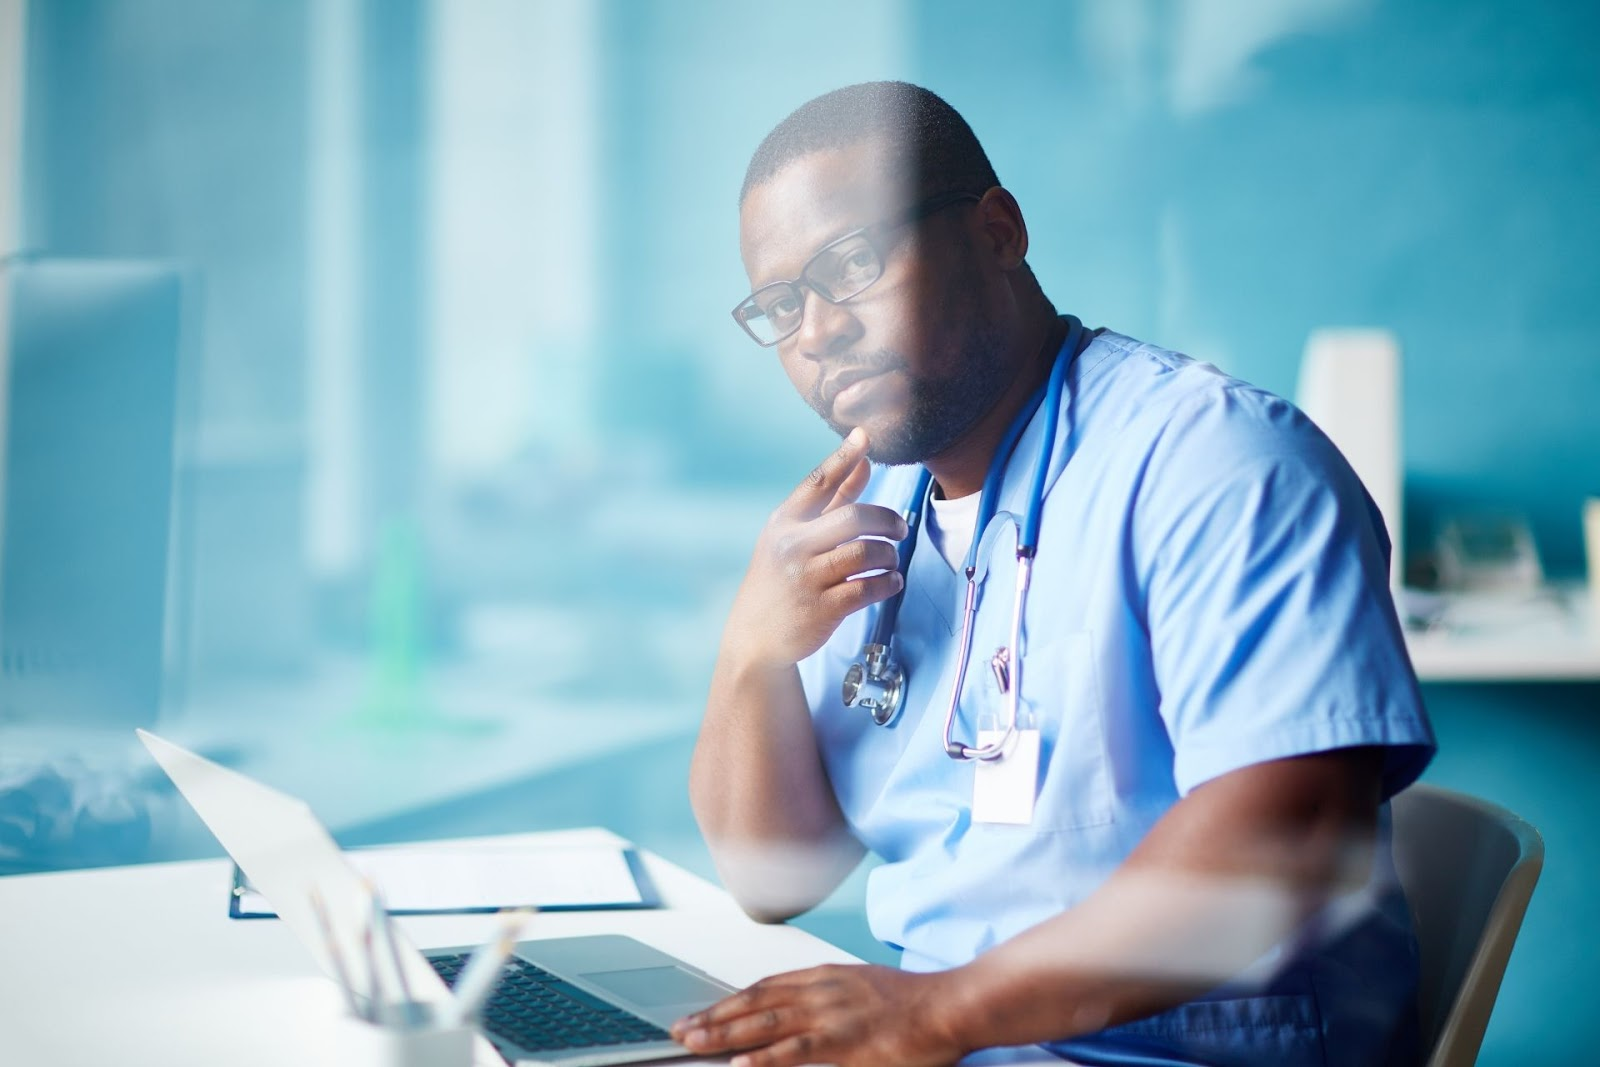 male doctor on laptop